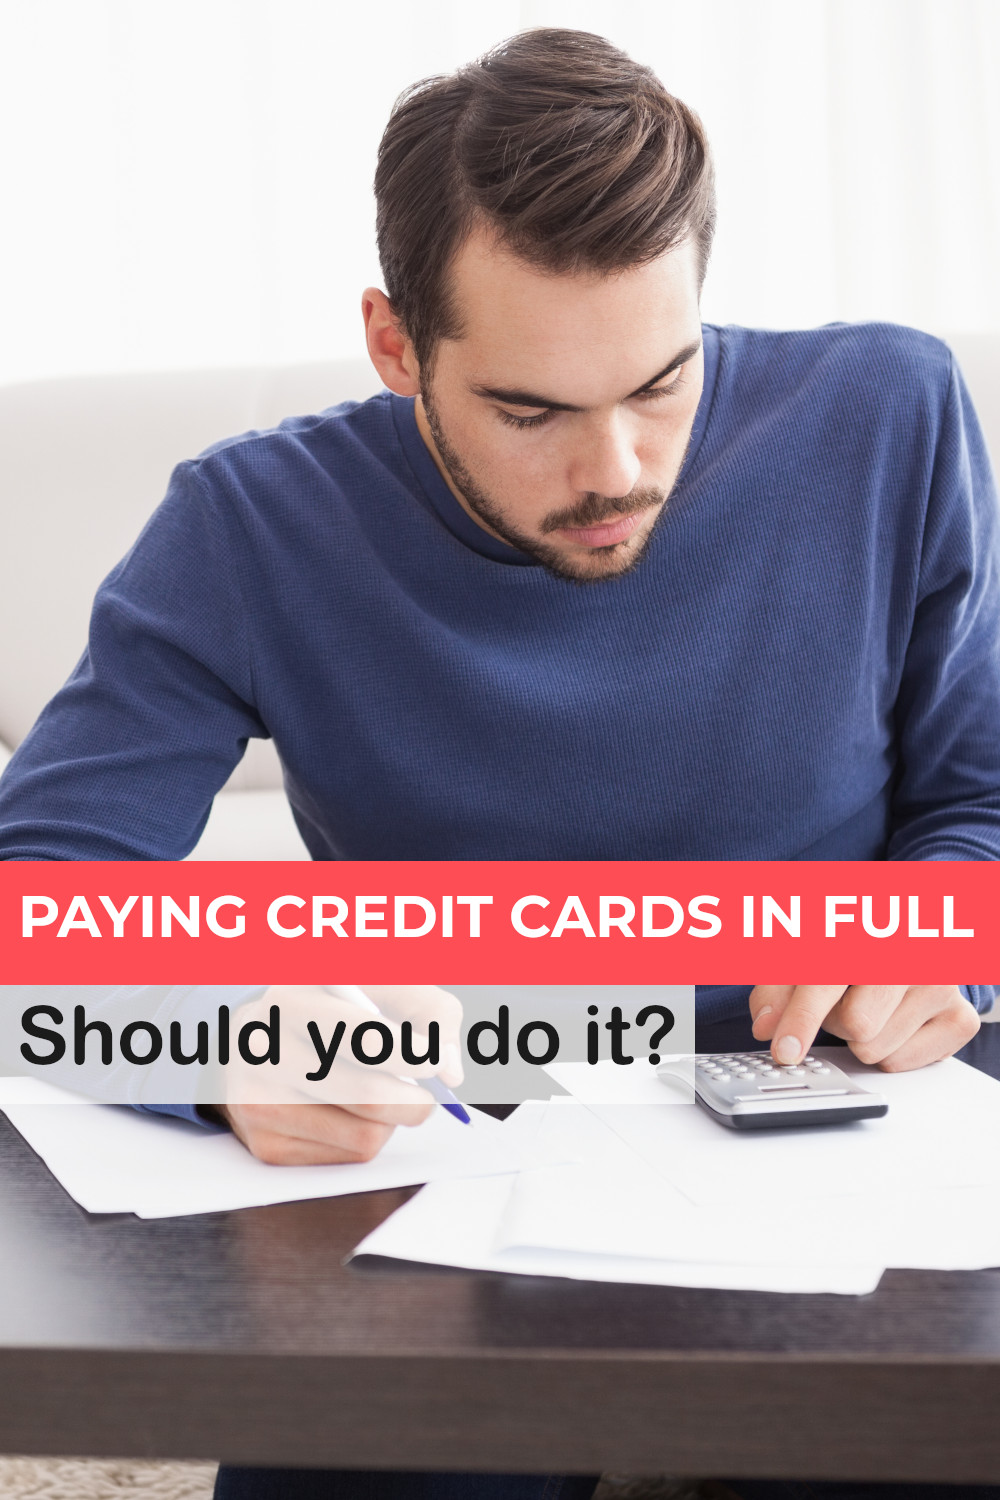 Paying off credit cards in full - the pros and cons and important things you should know.